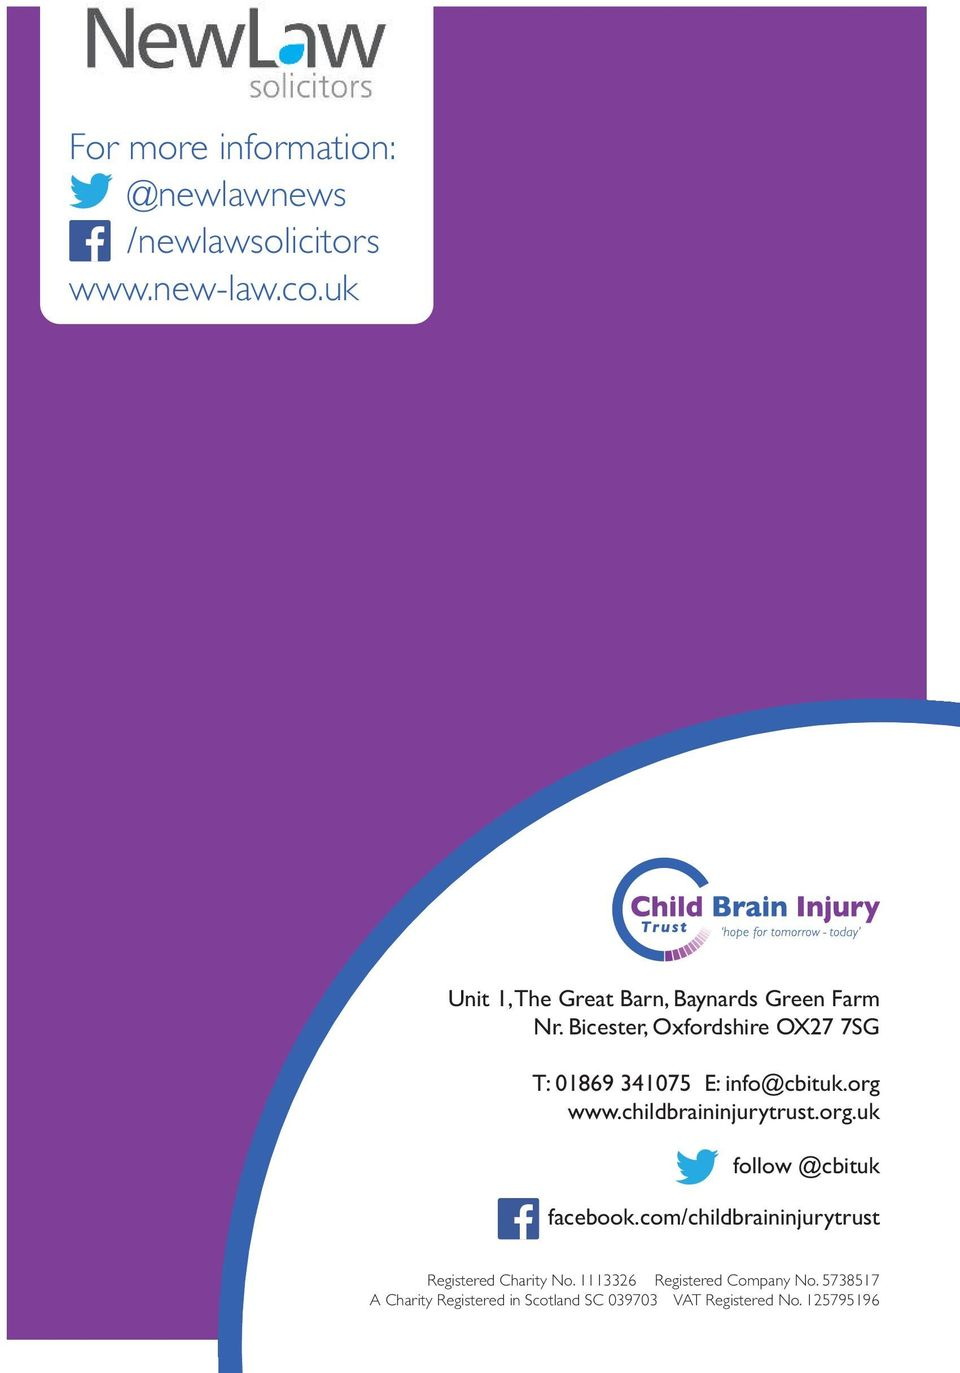 Bicester, Oxfordshire OX27 7SG T: 01869 341075 E: info@cbituk.org www.childbraininjurytrust.org.uk follow @cbituk facebook.